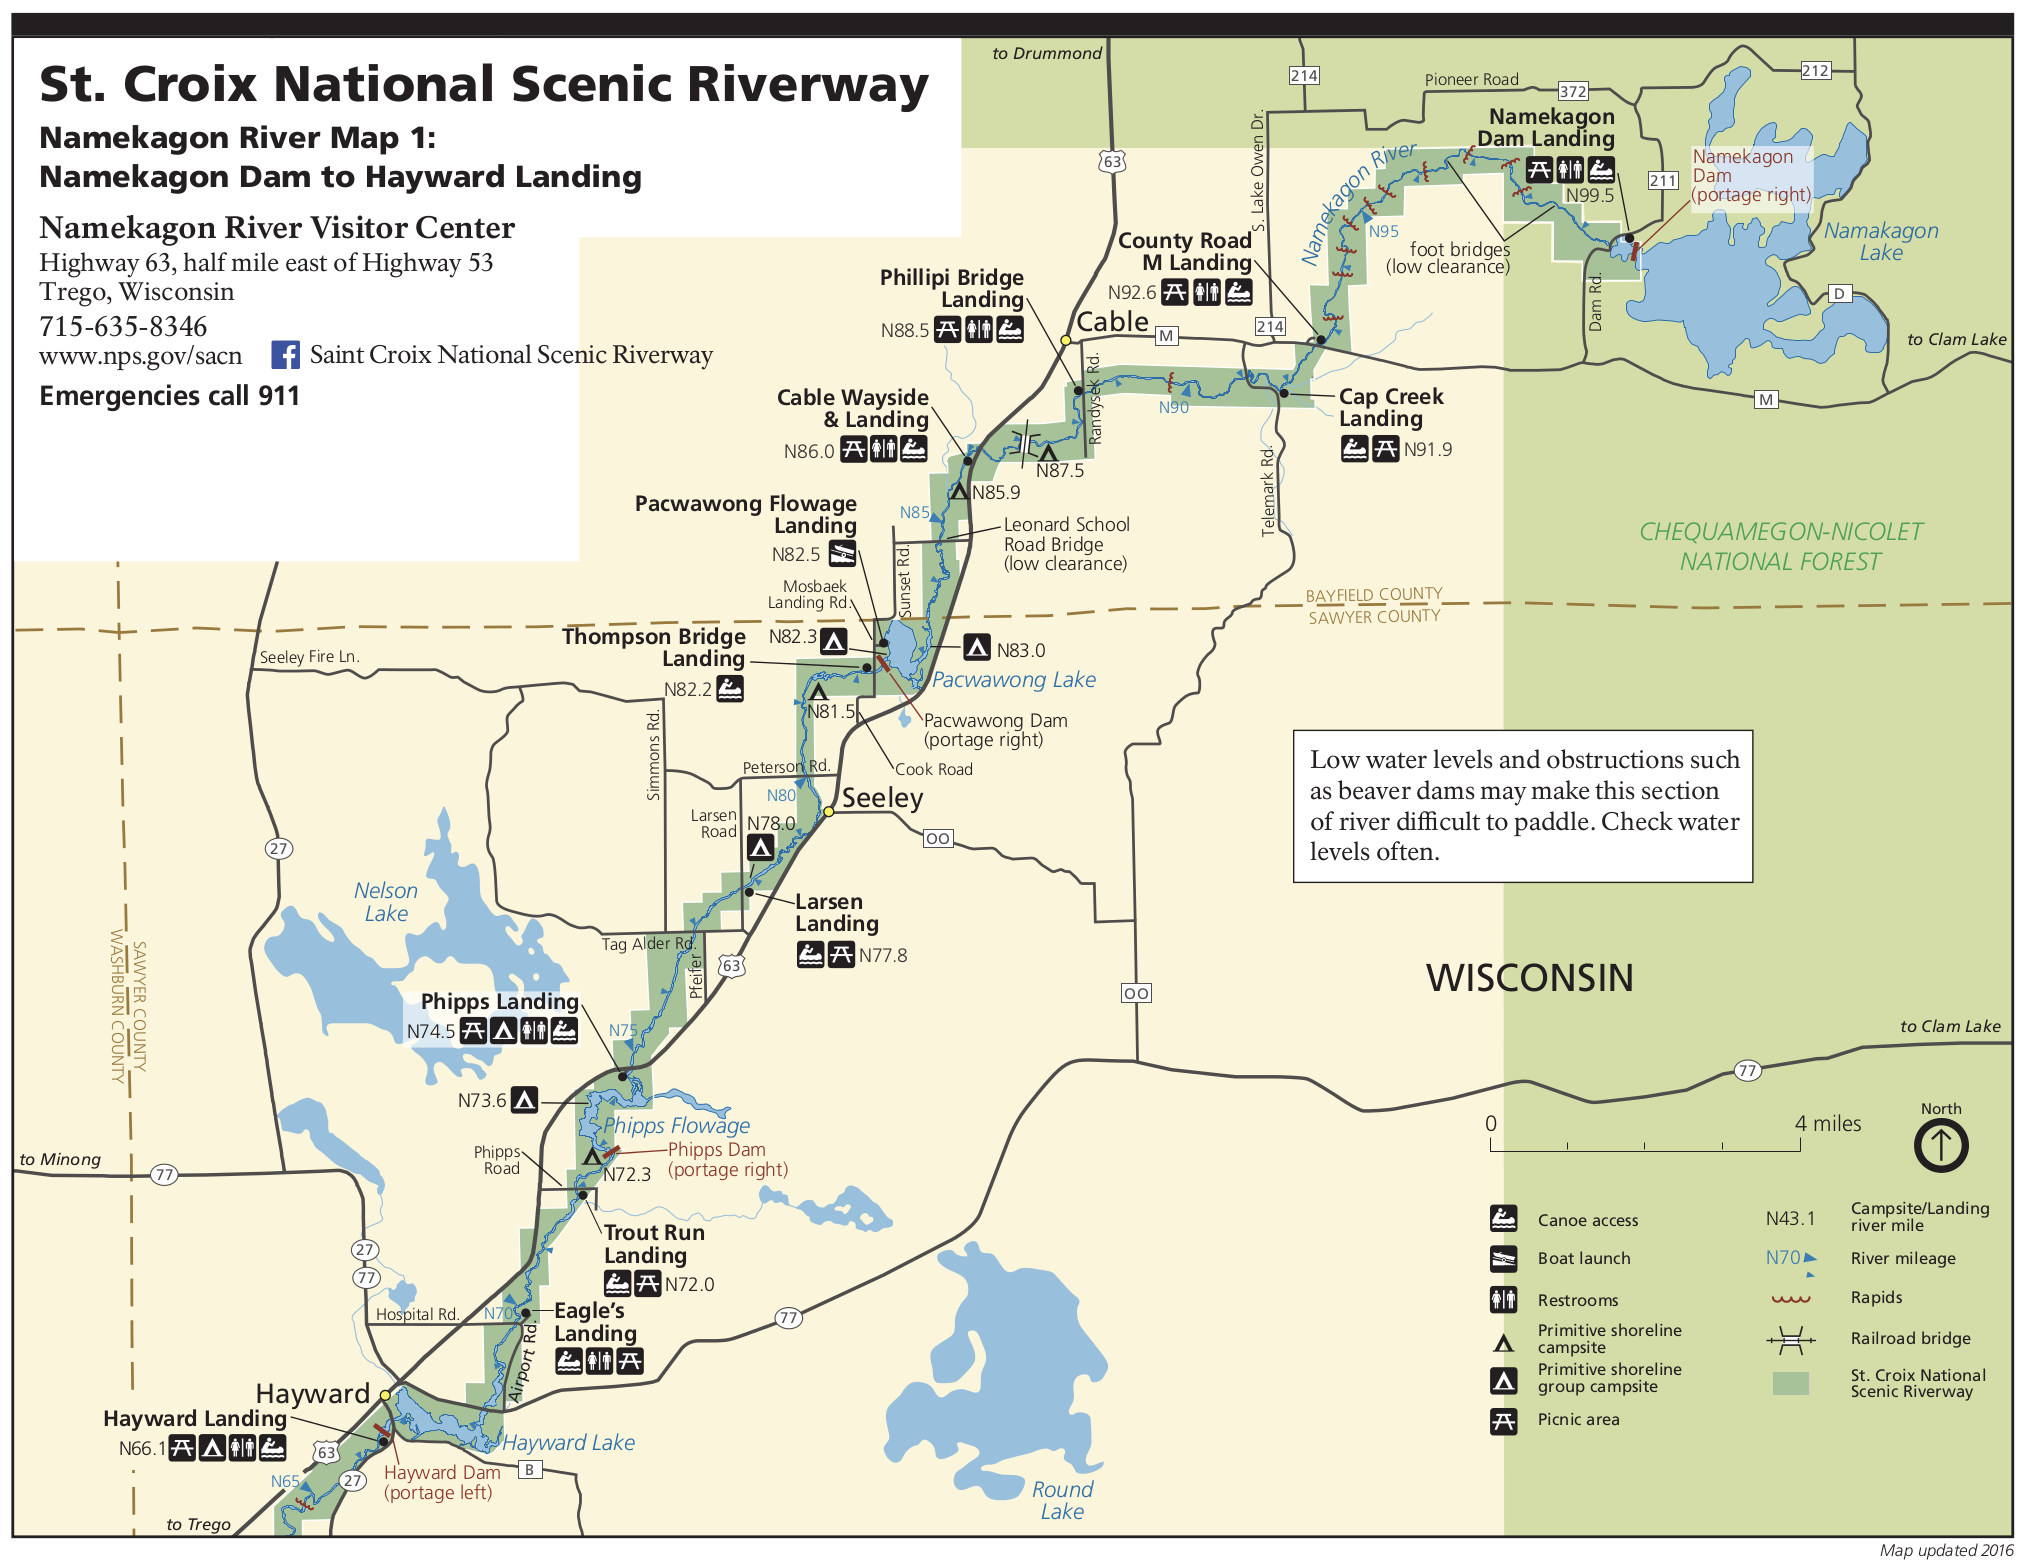 St Croix River Map Saint Croix Maps | NPMaps.  just free maps, period.